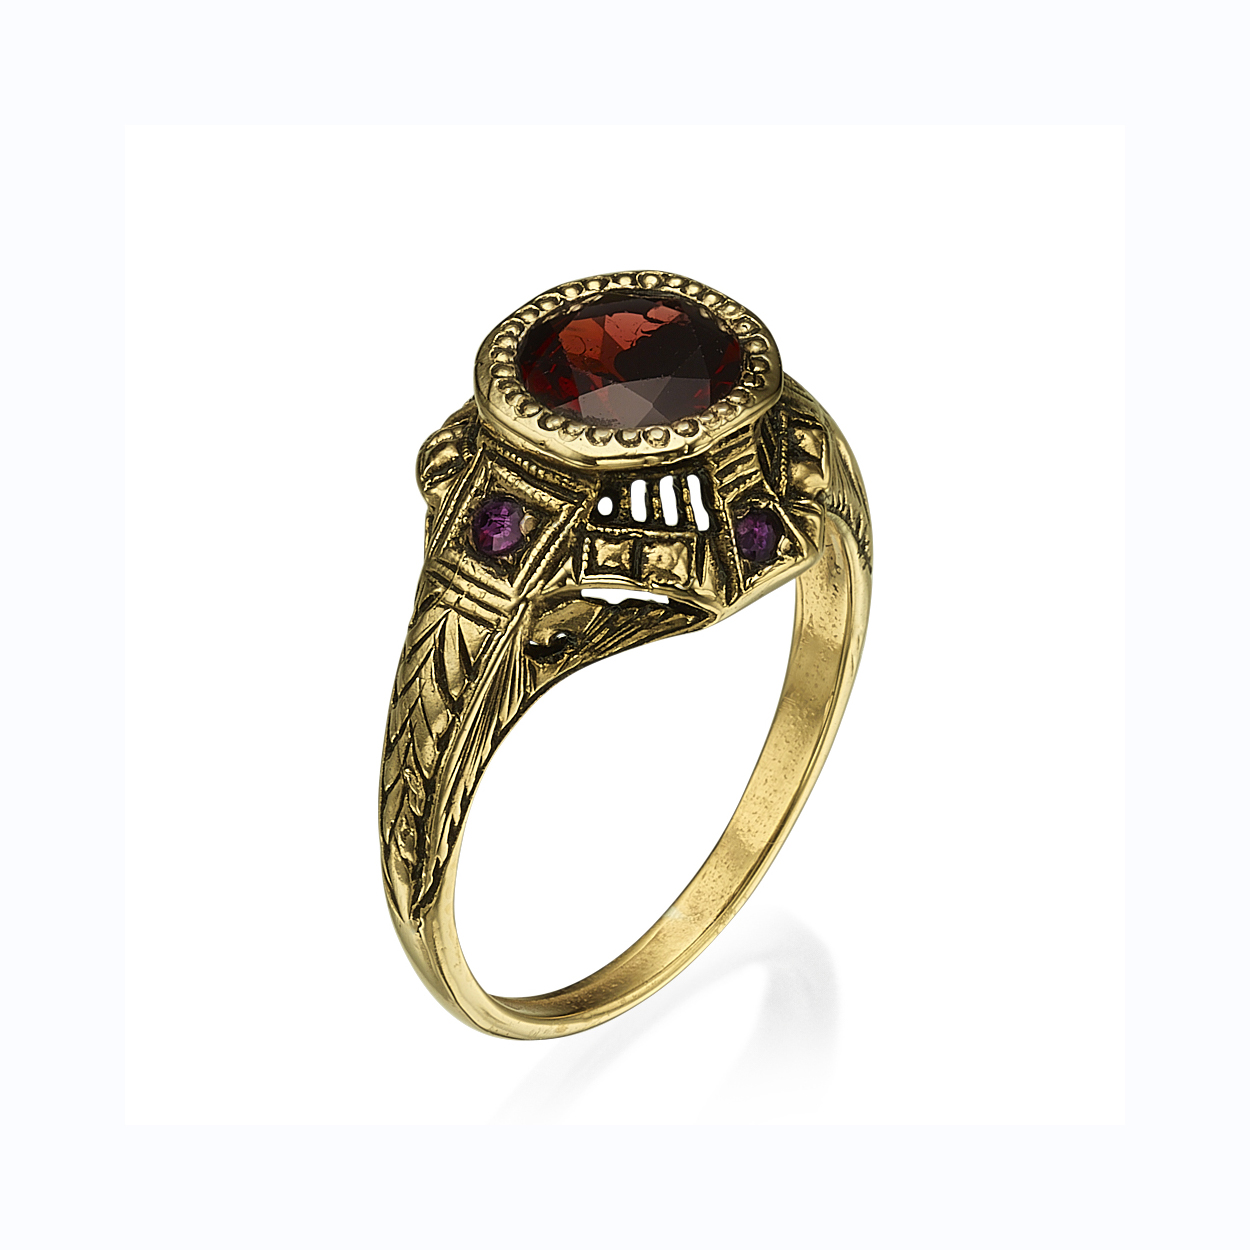 Baroque Garnet and Ruby Ring - Baltinester Jewelry